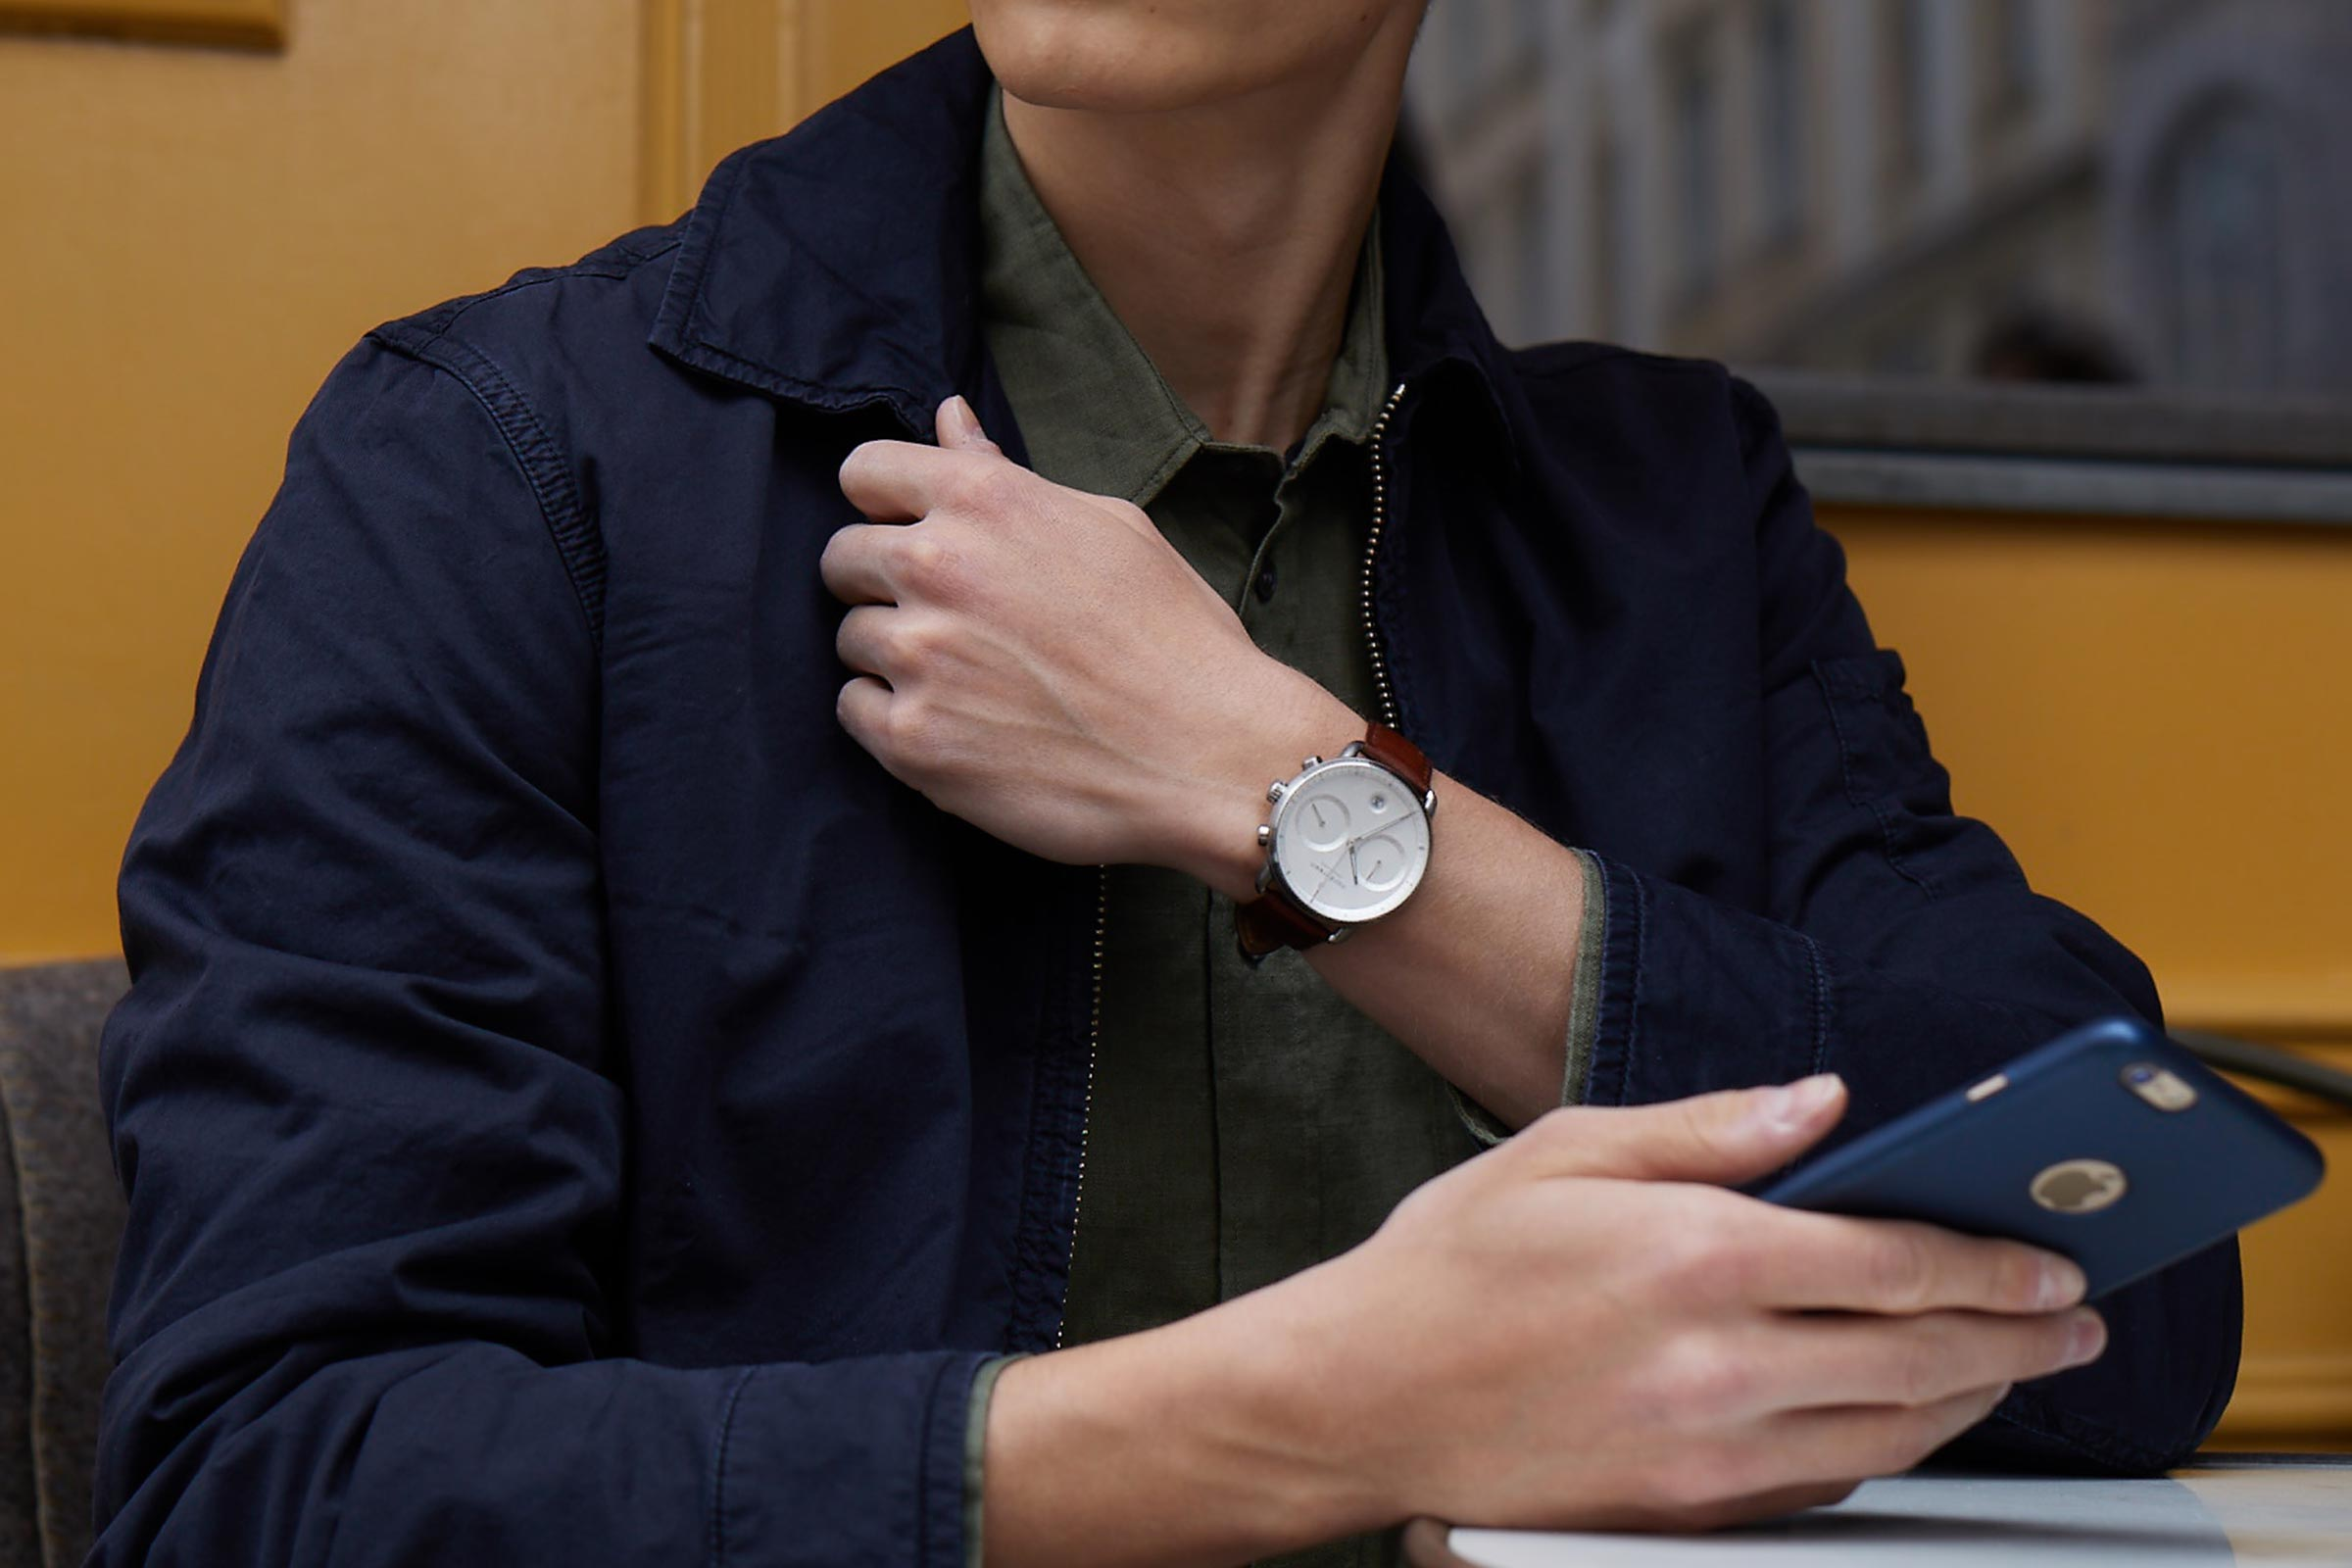 Nordgreen Minimalist Danish Watches - HEY GENTS6